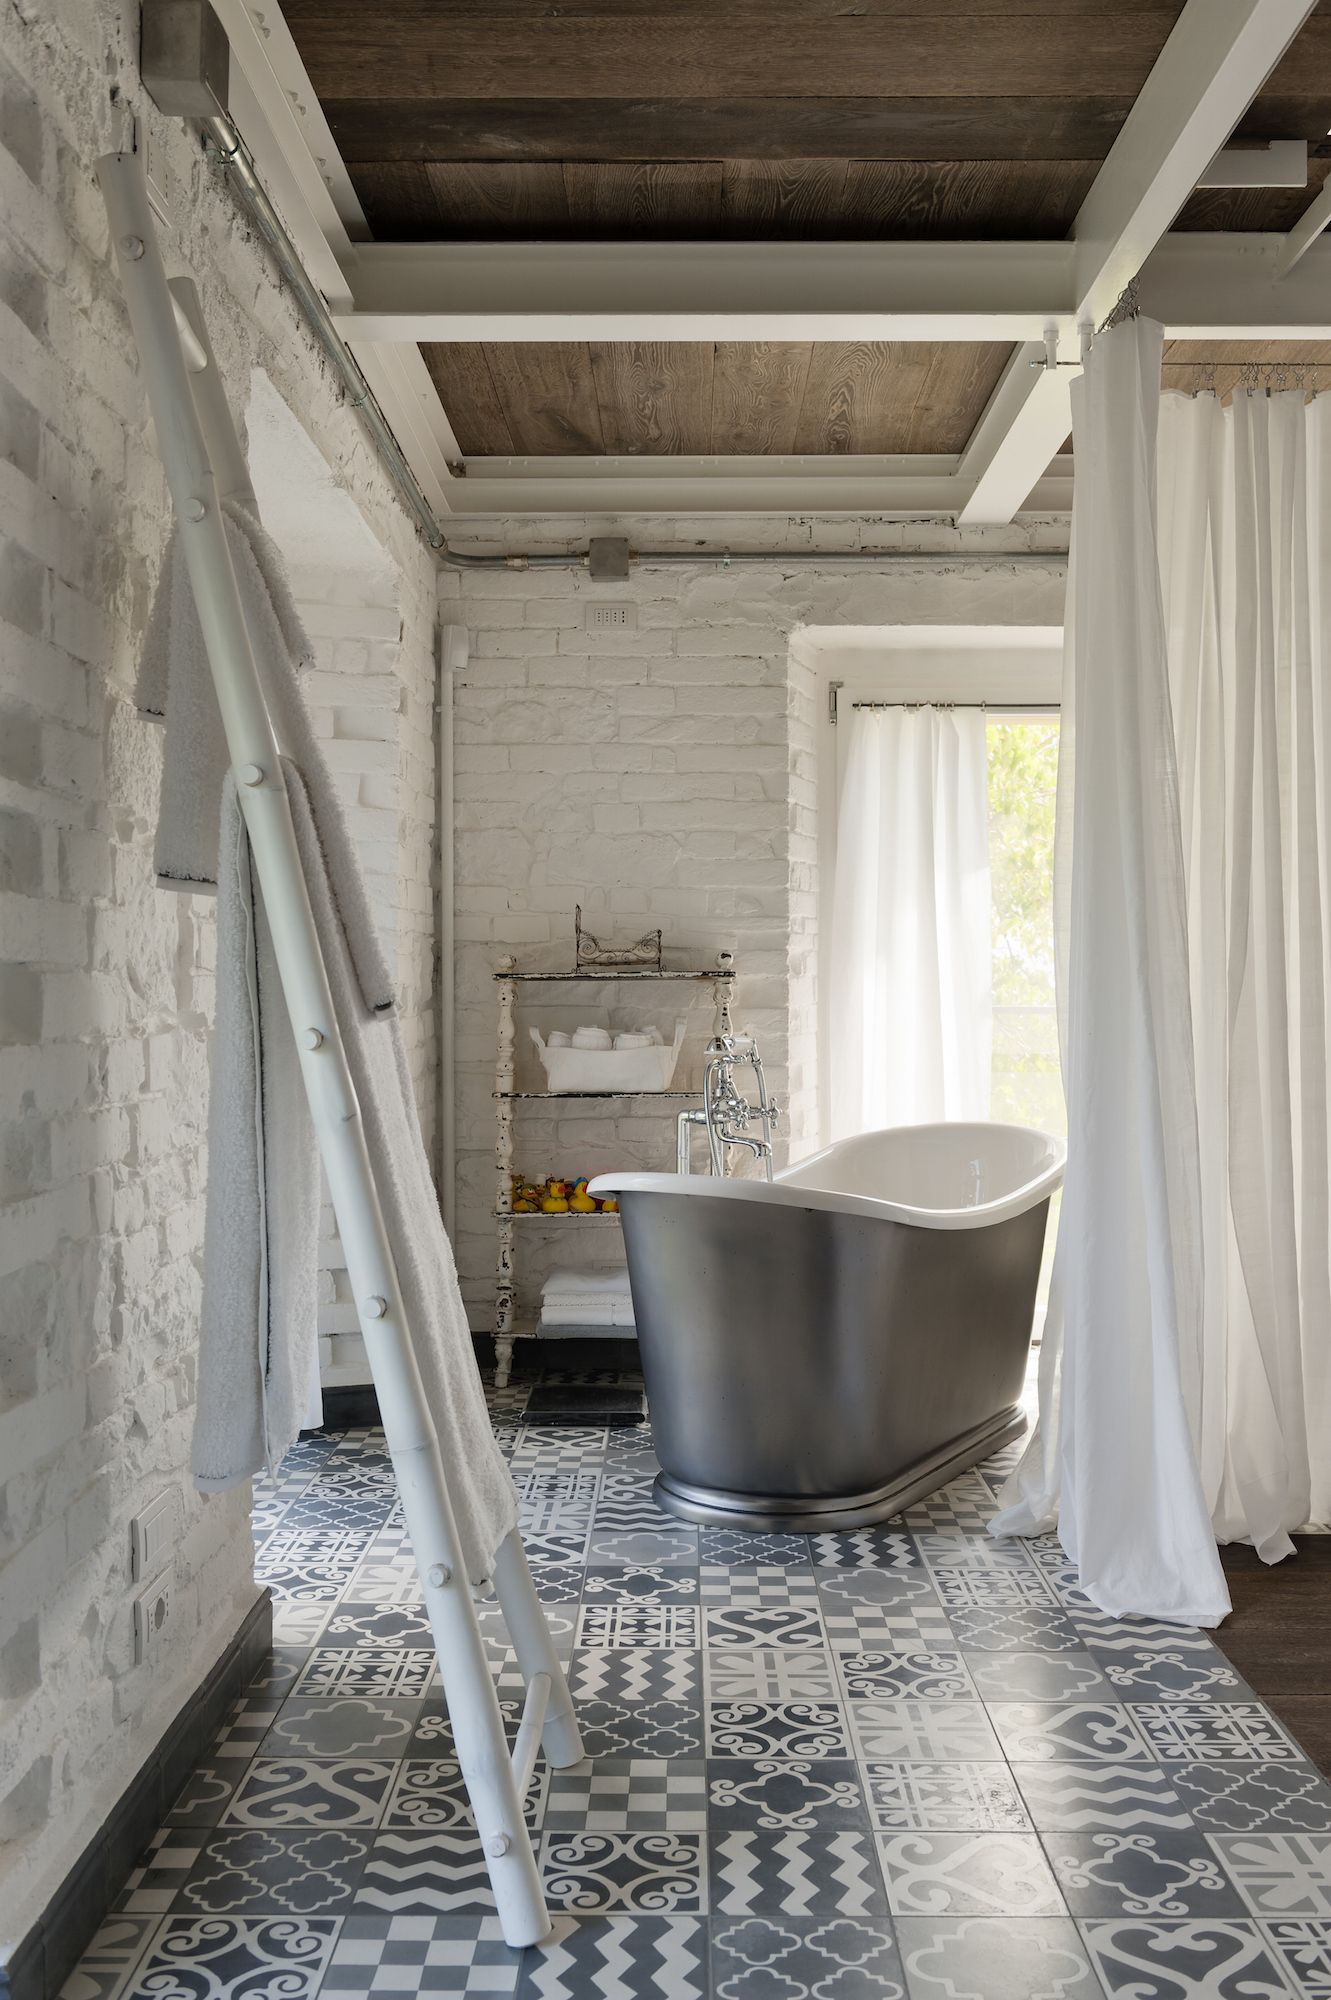 Gone Are The Days Of Tile Floors Blending Into Background A Room In 2017 You Ll See Reemergence Patterned Tiles Perhaps Reflective This